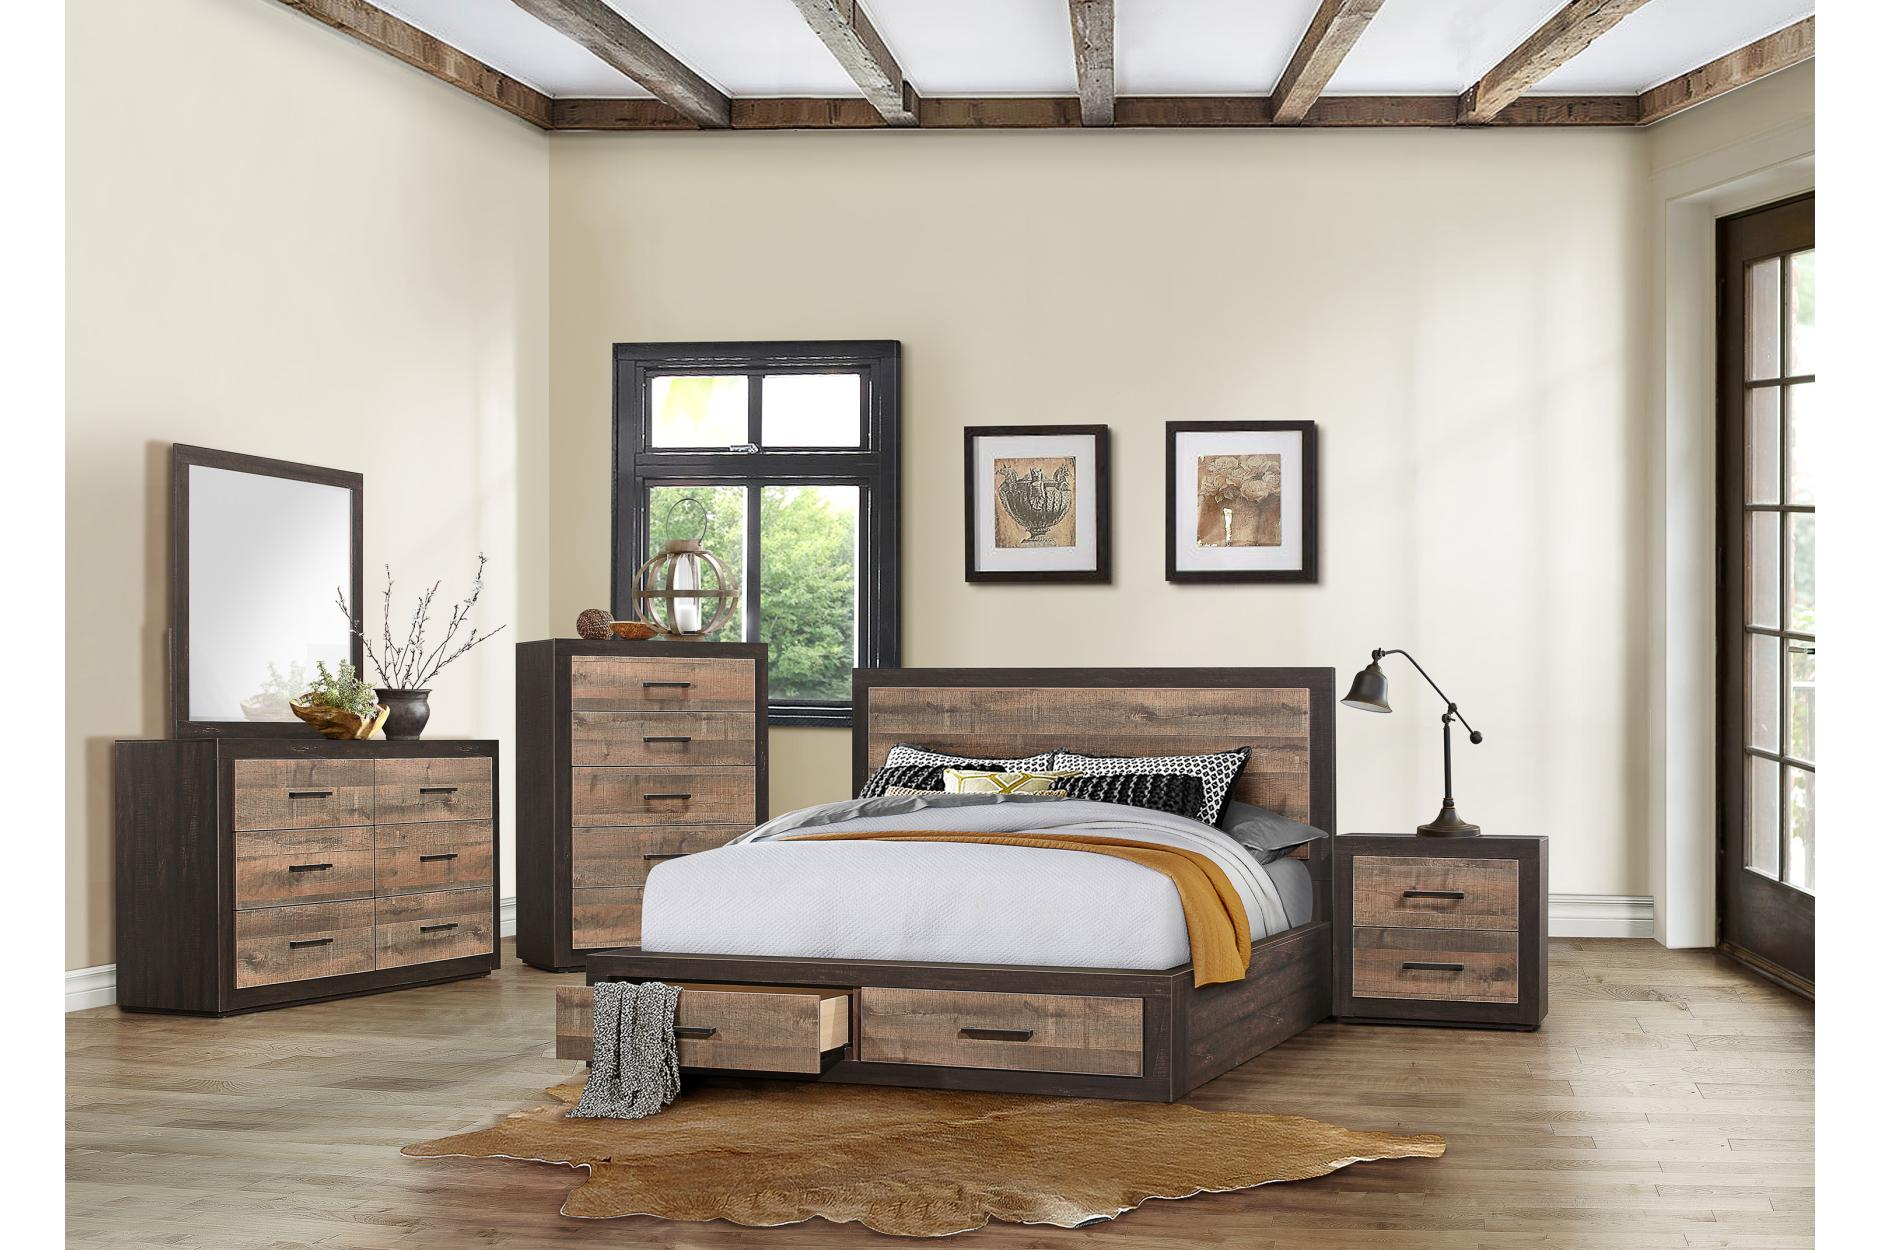 Miter Platform Bed w/ Footboard Storage by Homelegance